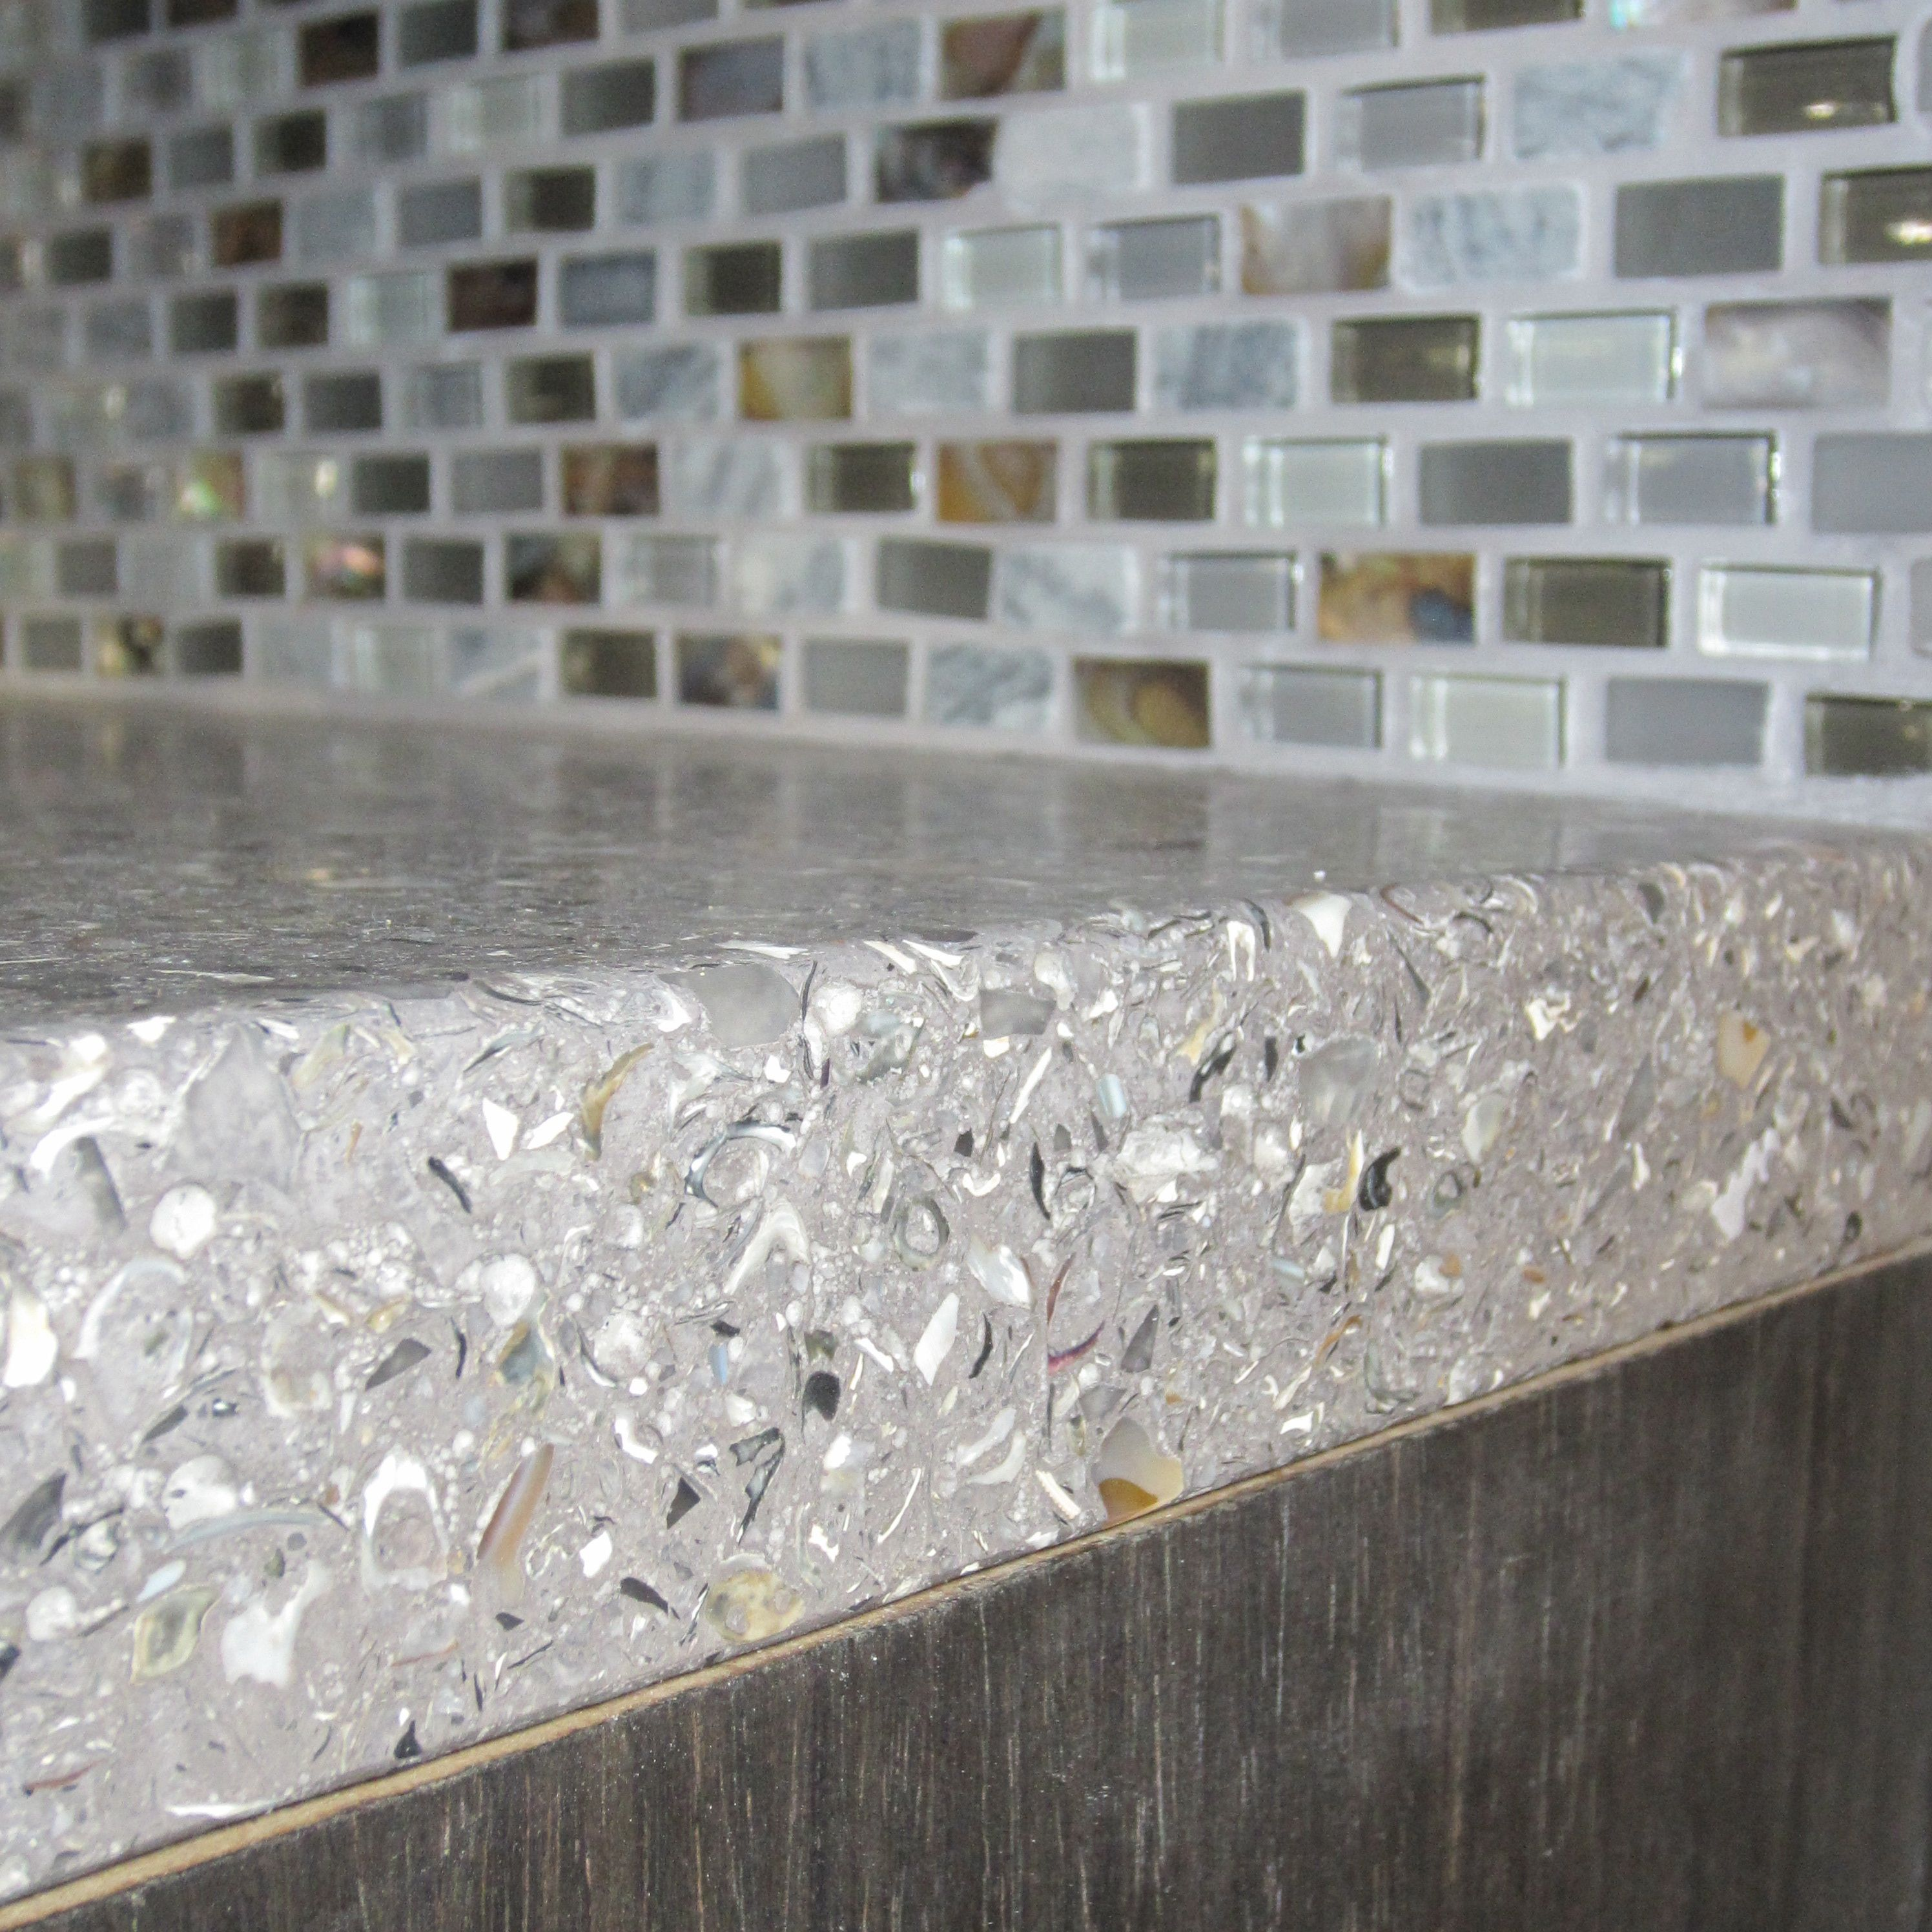 Black Recycled Glass Countertops Concrete Mixed With Oyster Shells Countertop And A